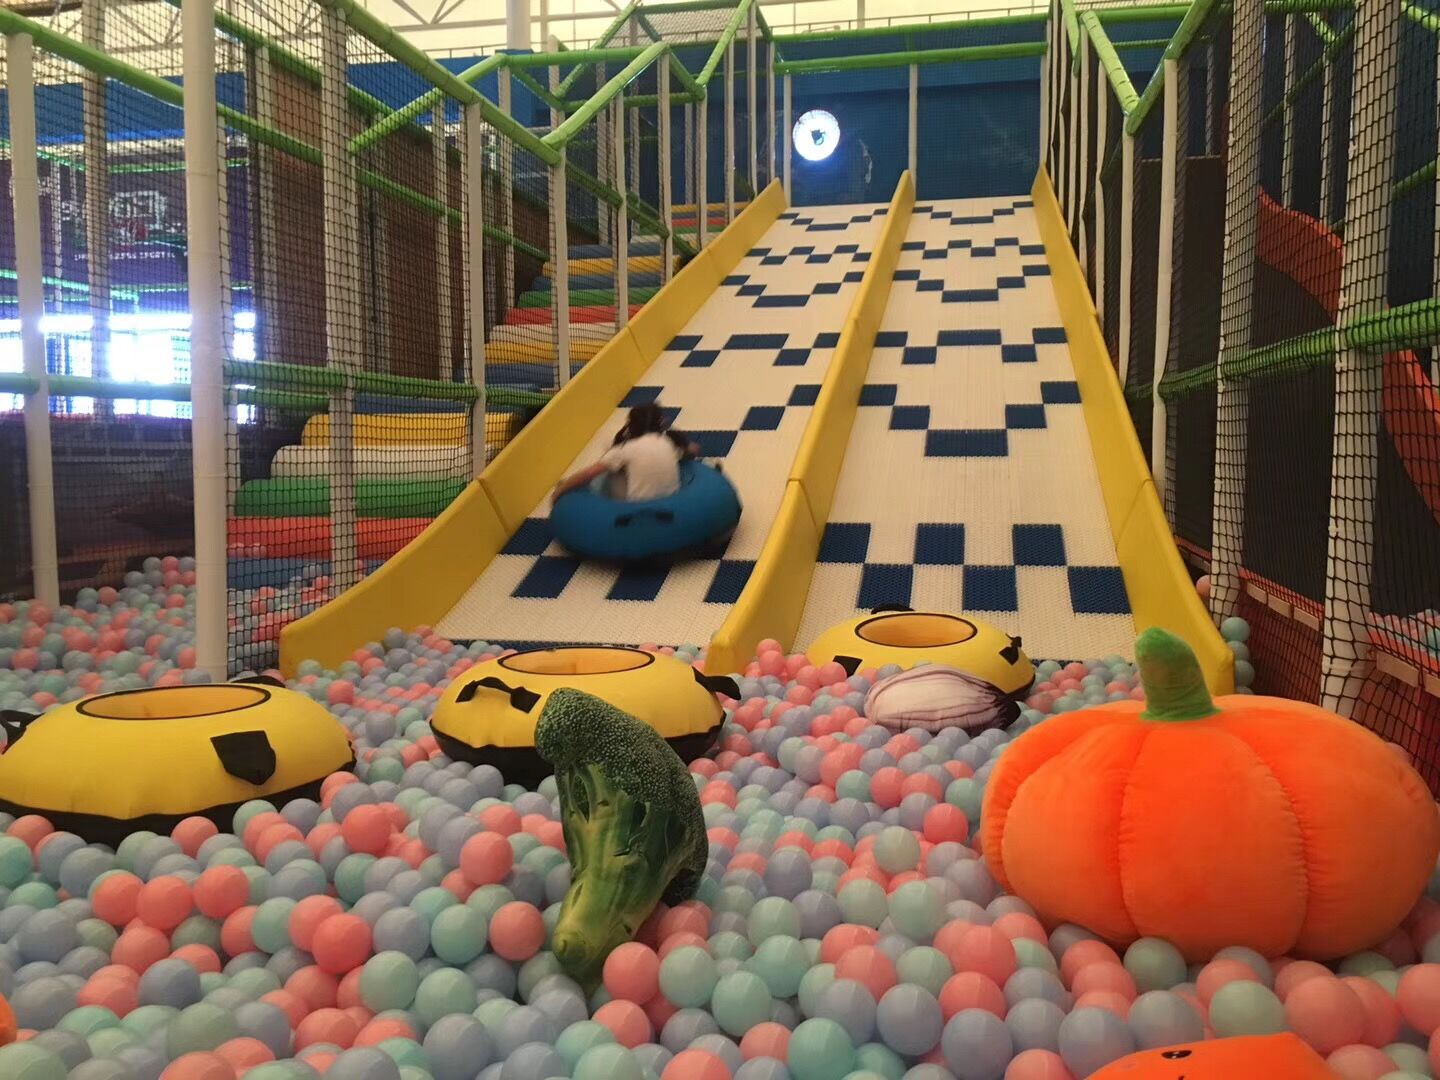 What's the Market Advantage of Children's Indoor Playground?